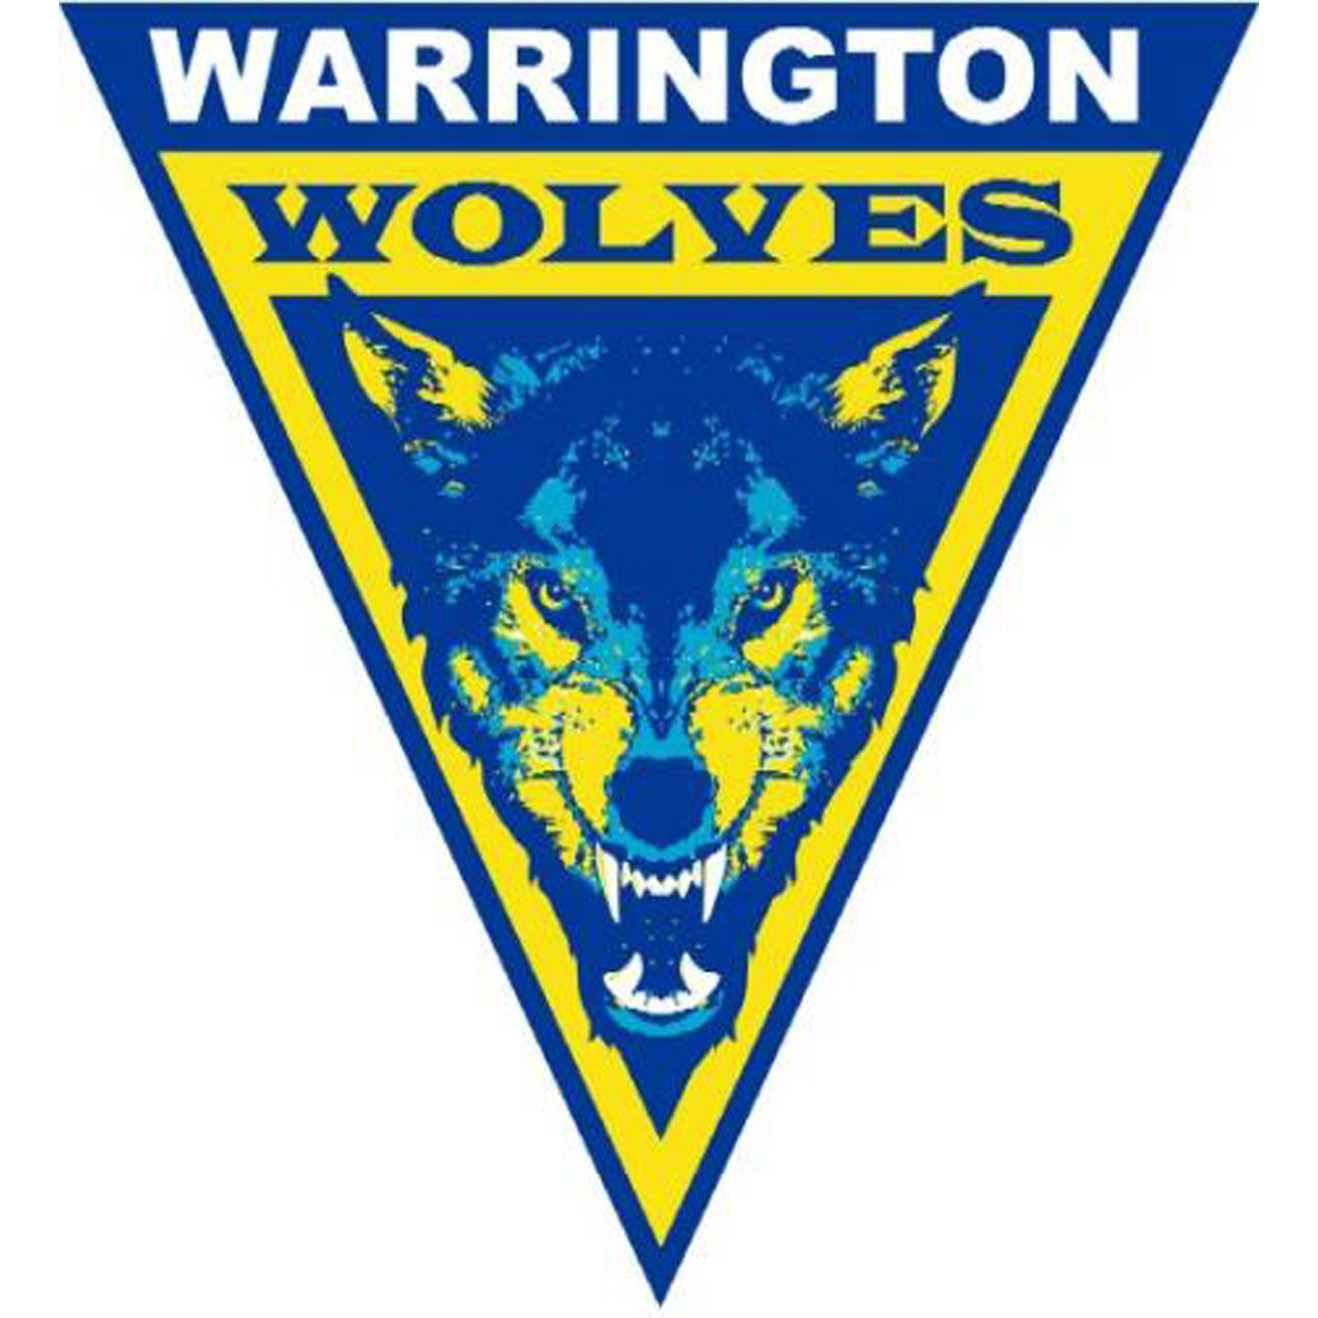 Wolves academy pull off superb comeback win against Wigan